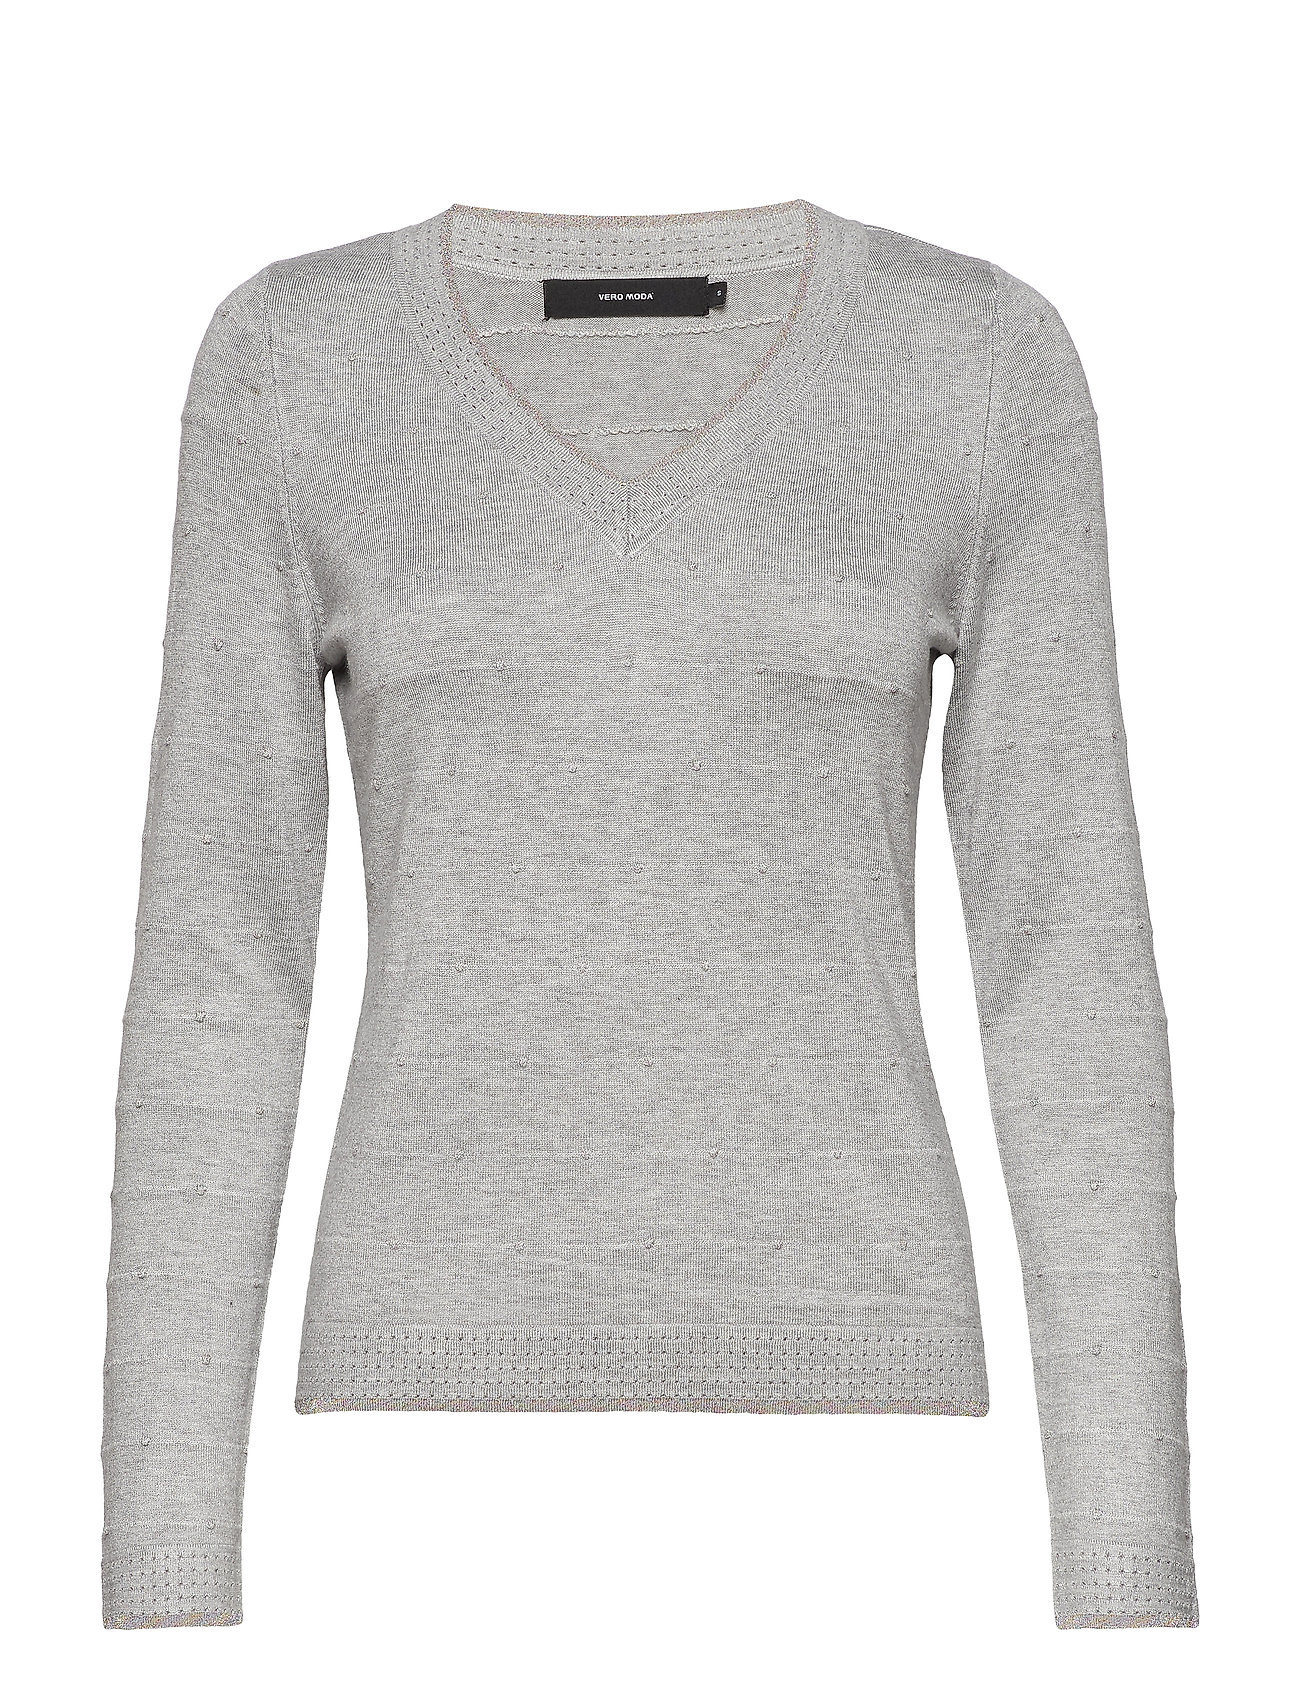 Vero Moda VMCLAIR GLORY LS V-NECK BLOUSE LCS - LIGHT GREY MELANGE